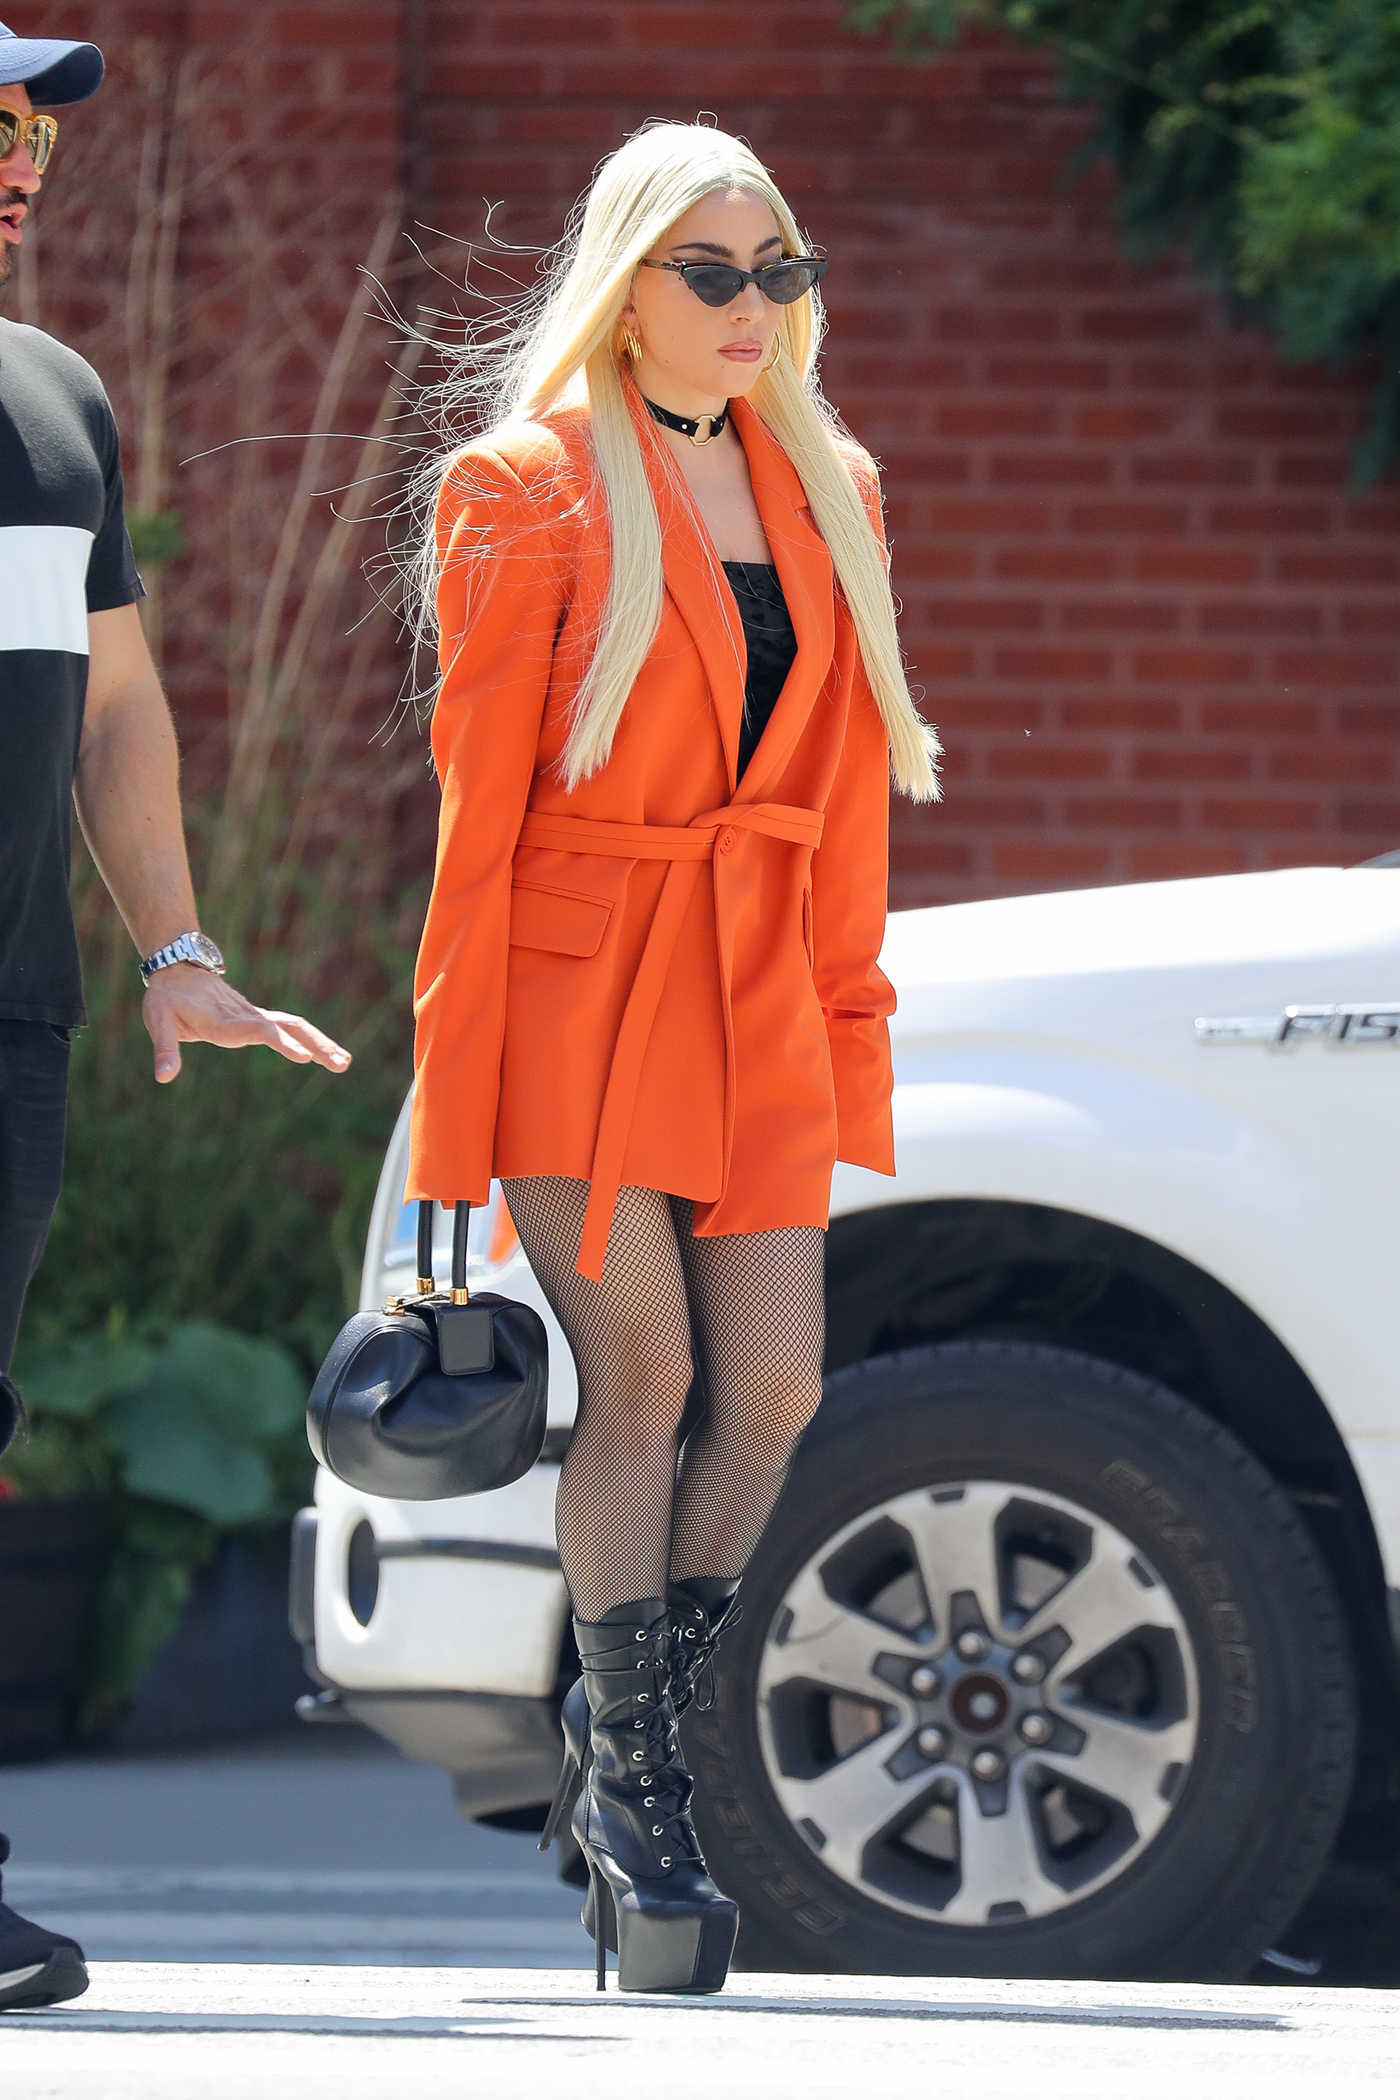 Lady Gaga Wears a Bright Orange Blazer Out in New York City 06/25/2018